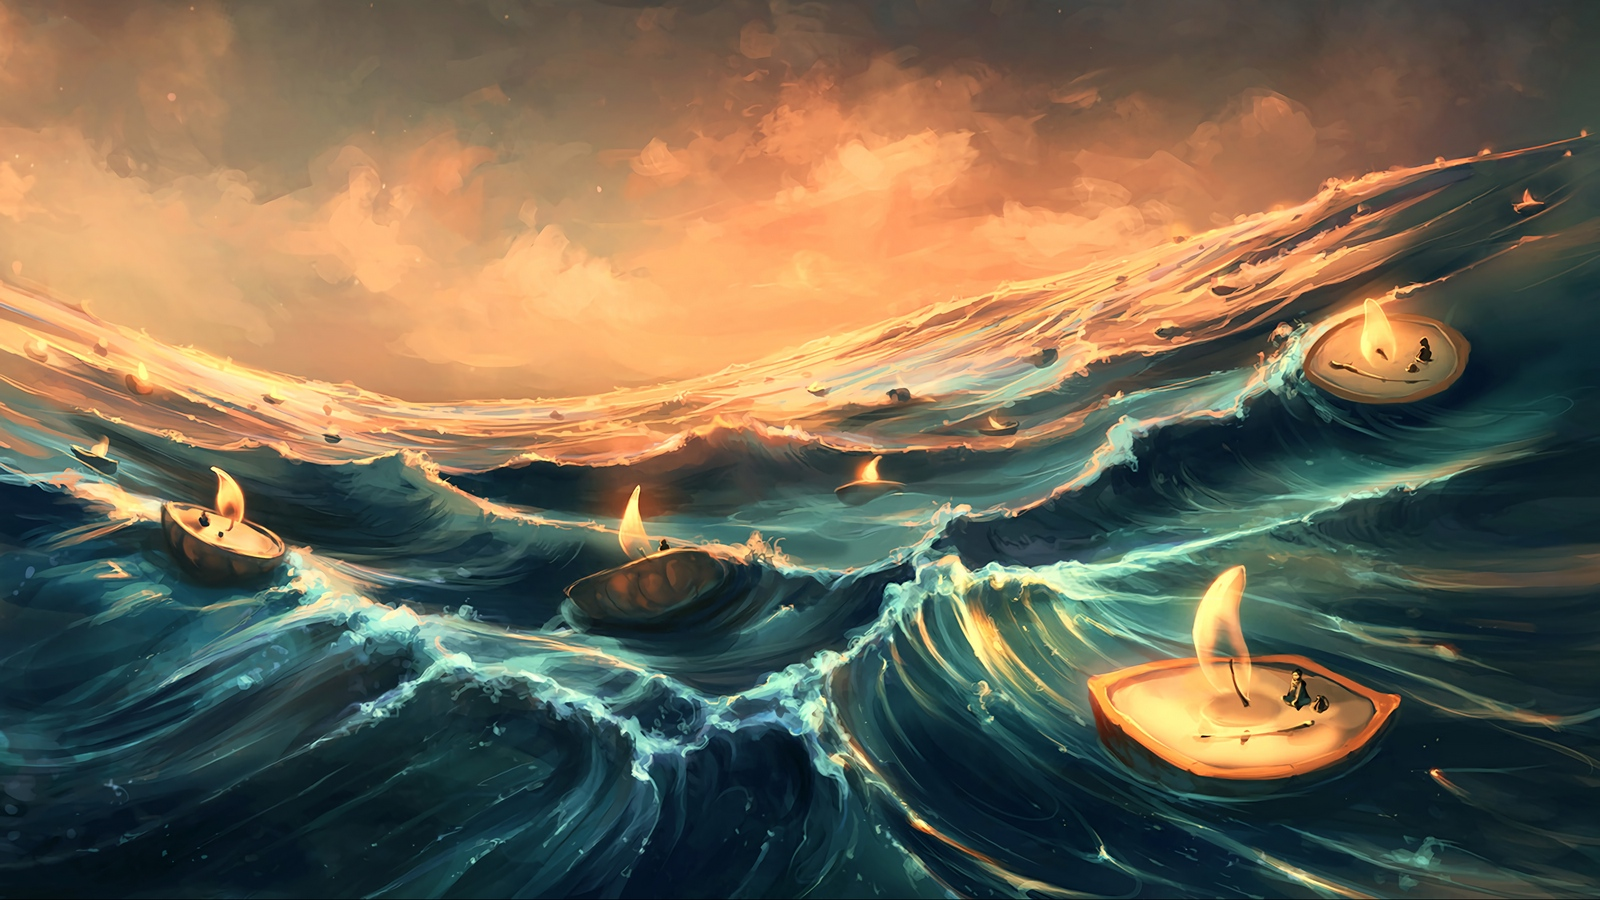 The Waves of Our Destiny